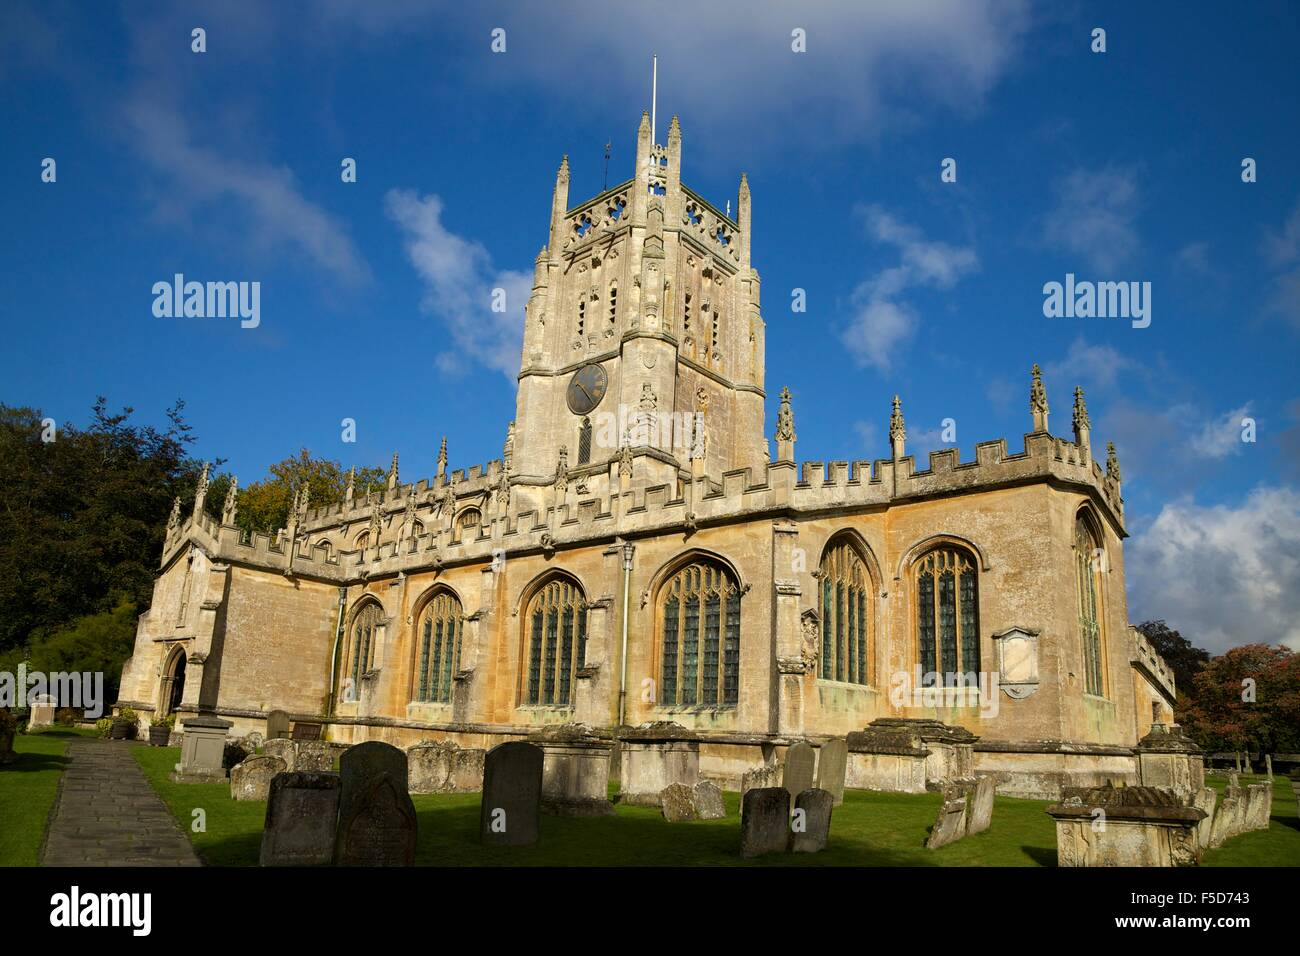 Church of St Mary the Virgin, Fairford, Cotswolds, Gloucestershire, England, UK, GB, Europe - Stock Image